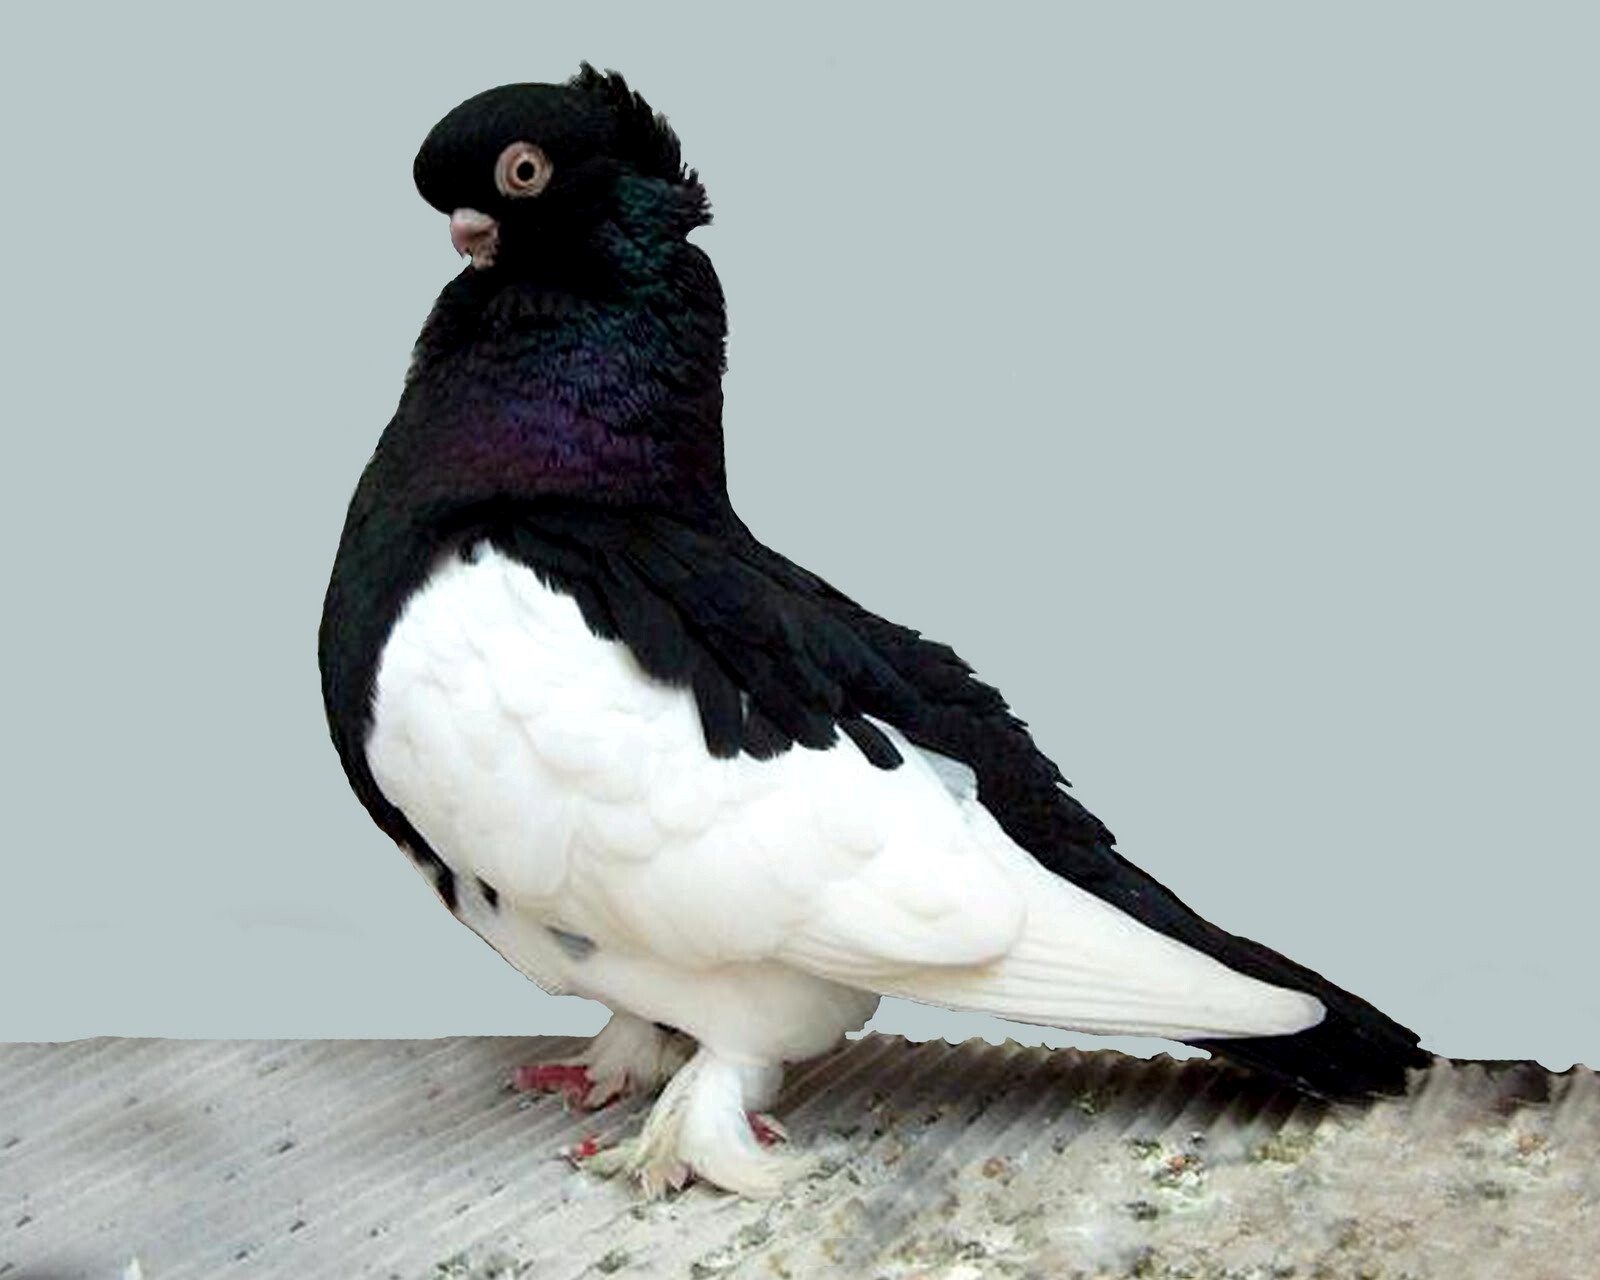 Black dove bird images - photo#3